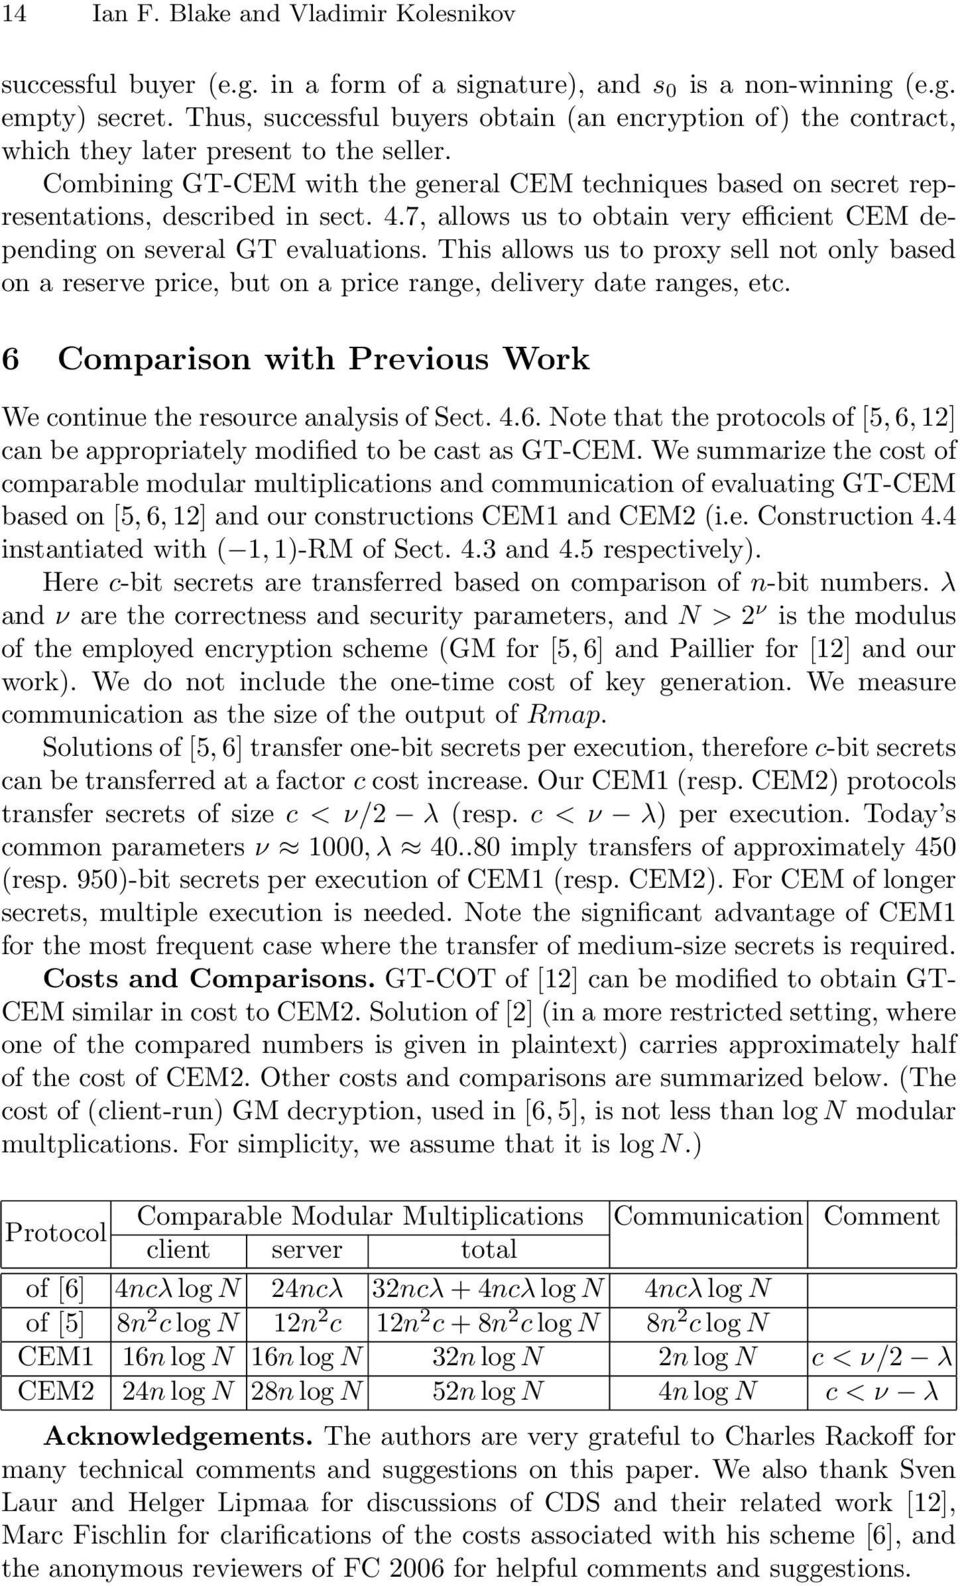 Combining GT-CEM with the general CEM techniques based on secret representations, described in sect. 4.7, allows us to obtain very efficient CEM depending on several GT evaluations.